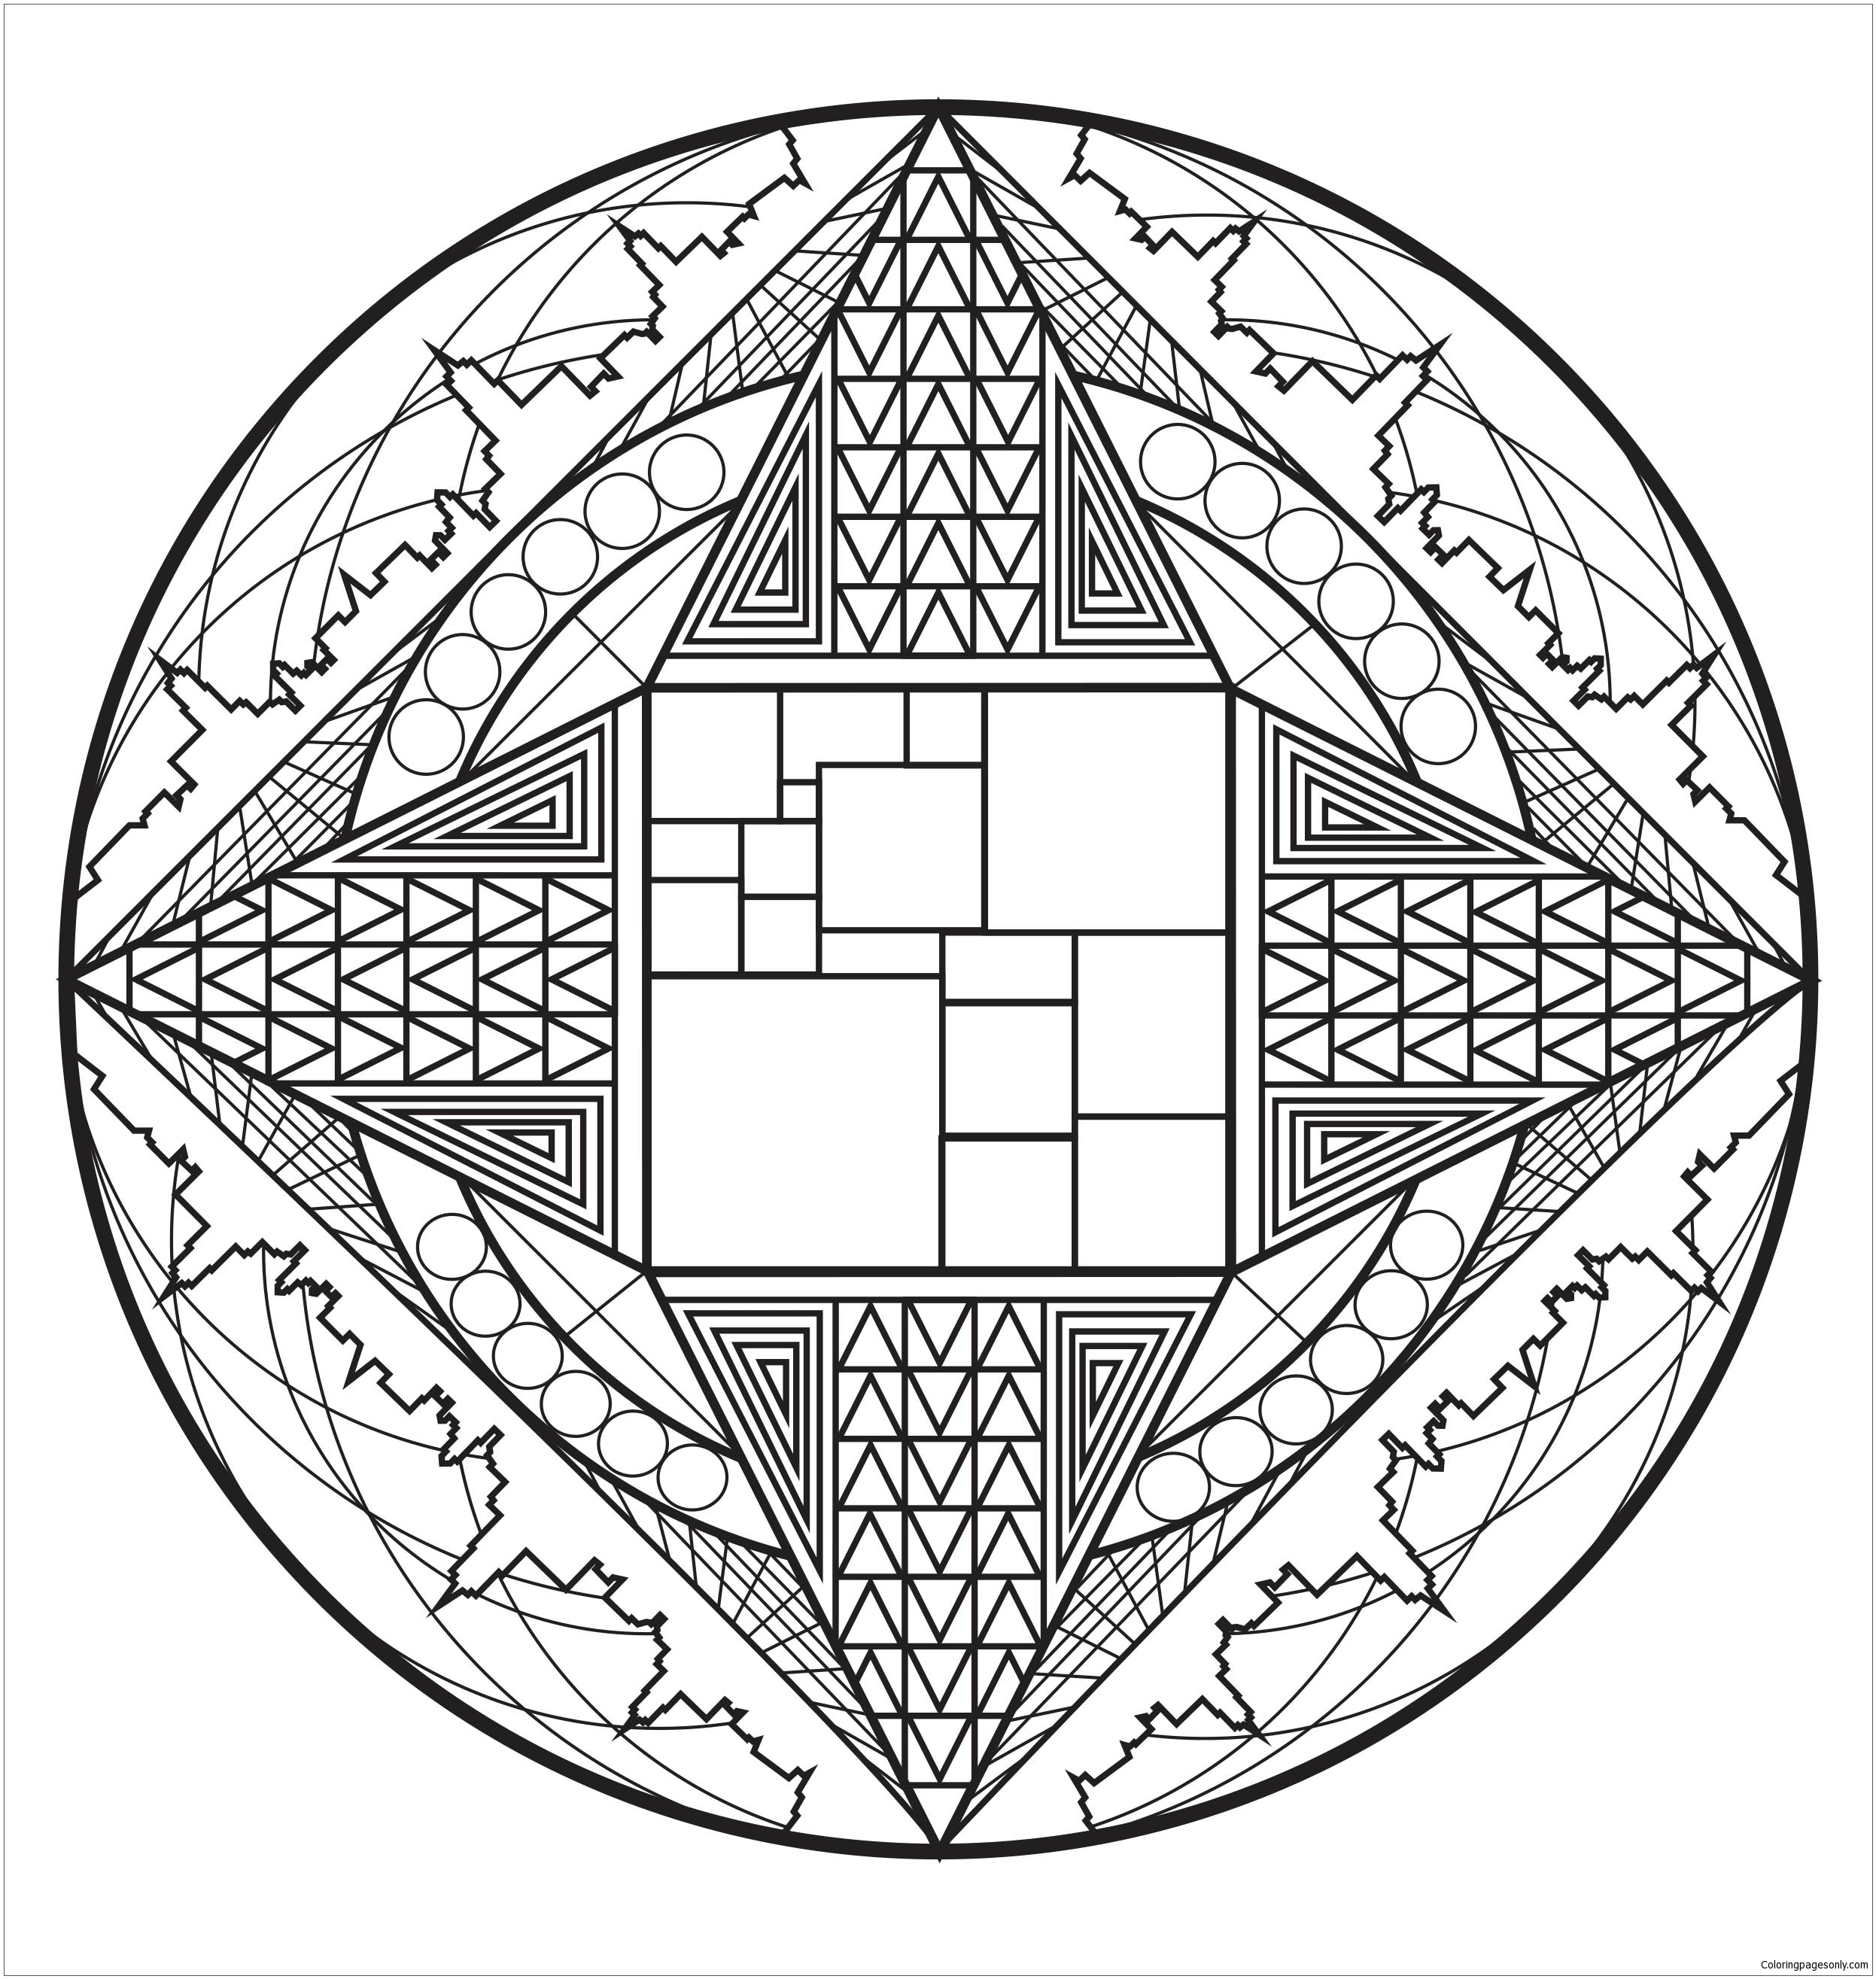 Mandala Art Deco Coloring Page - Free Coloring Pages Online